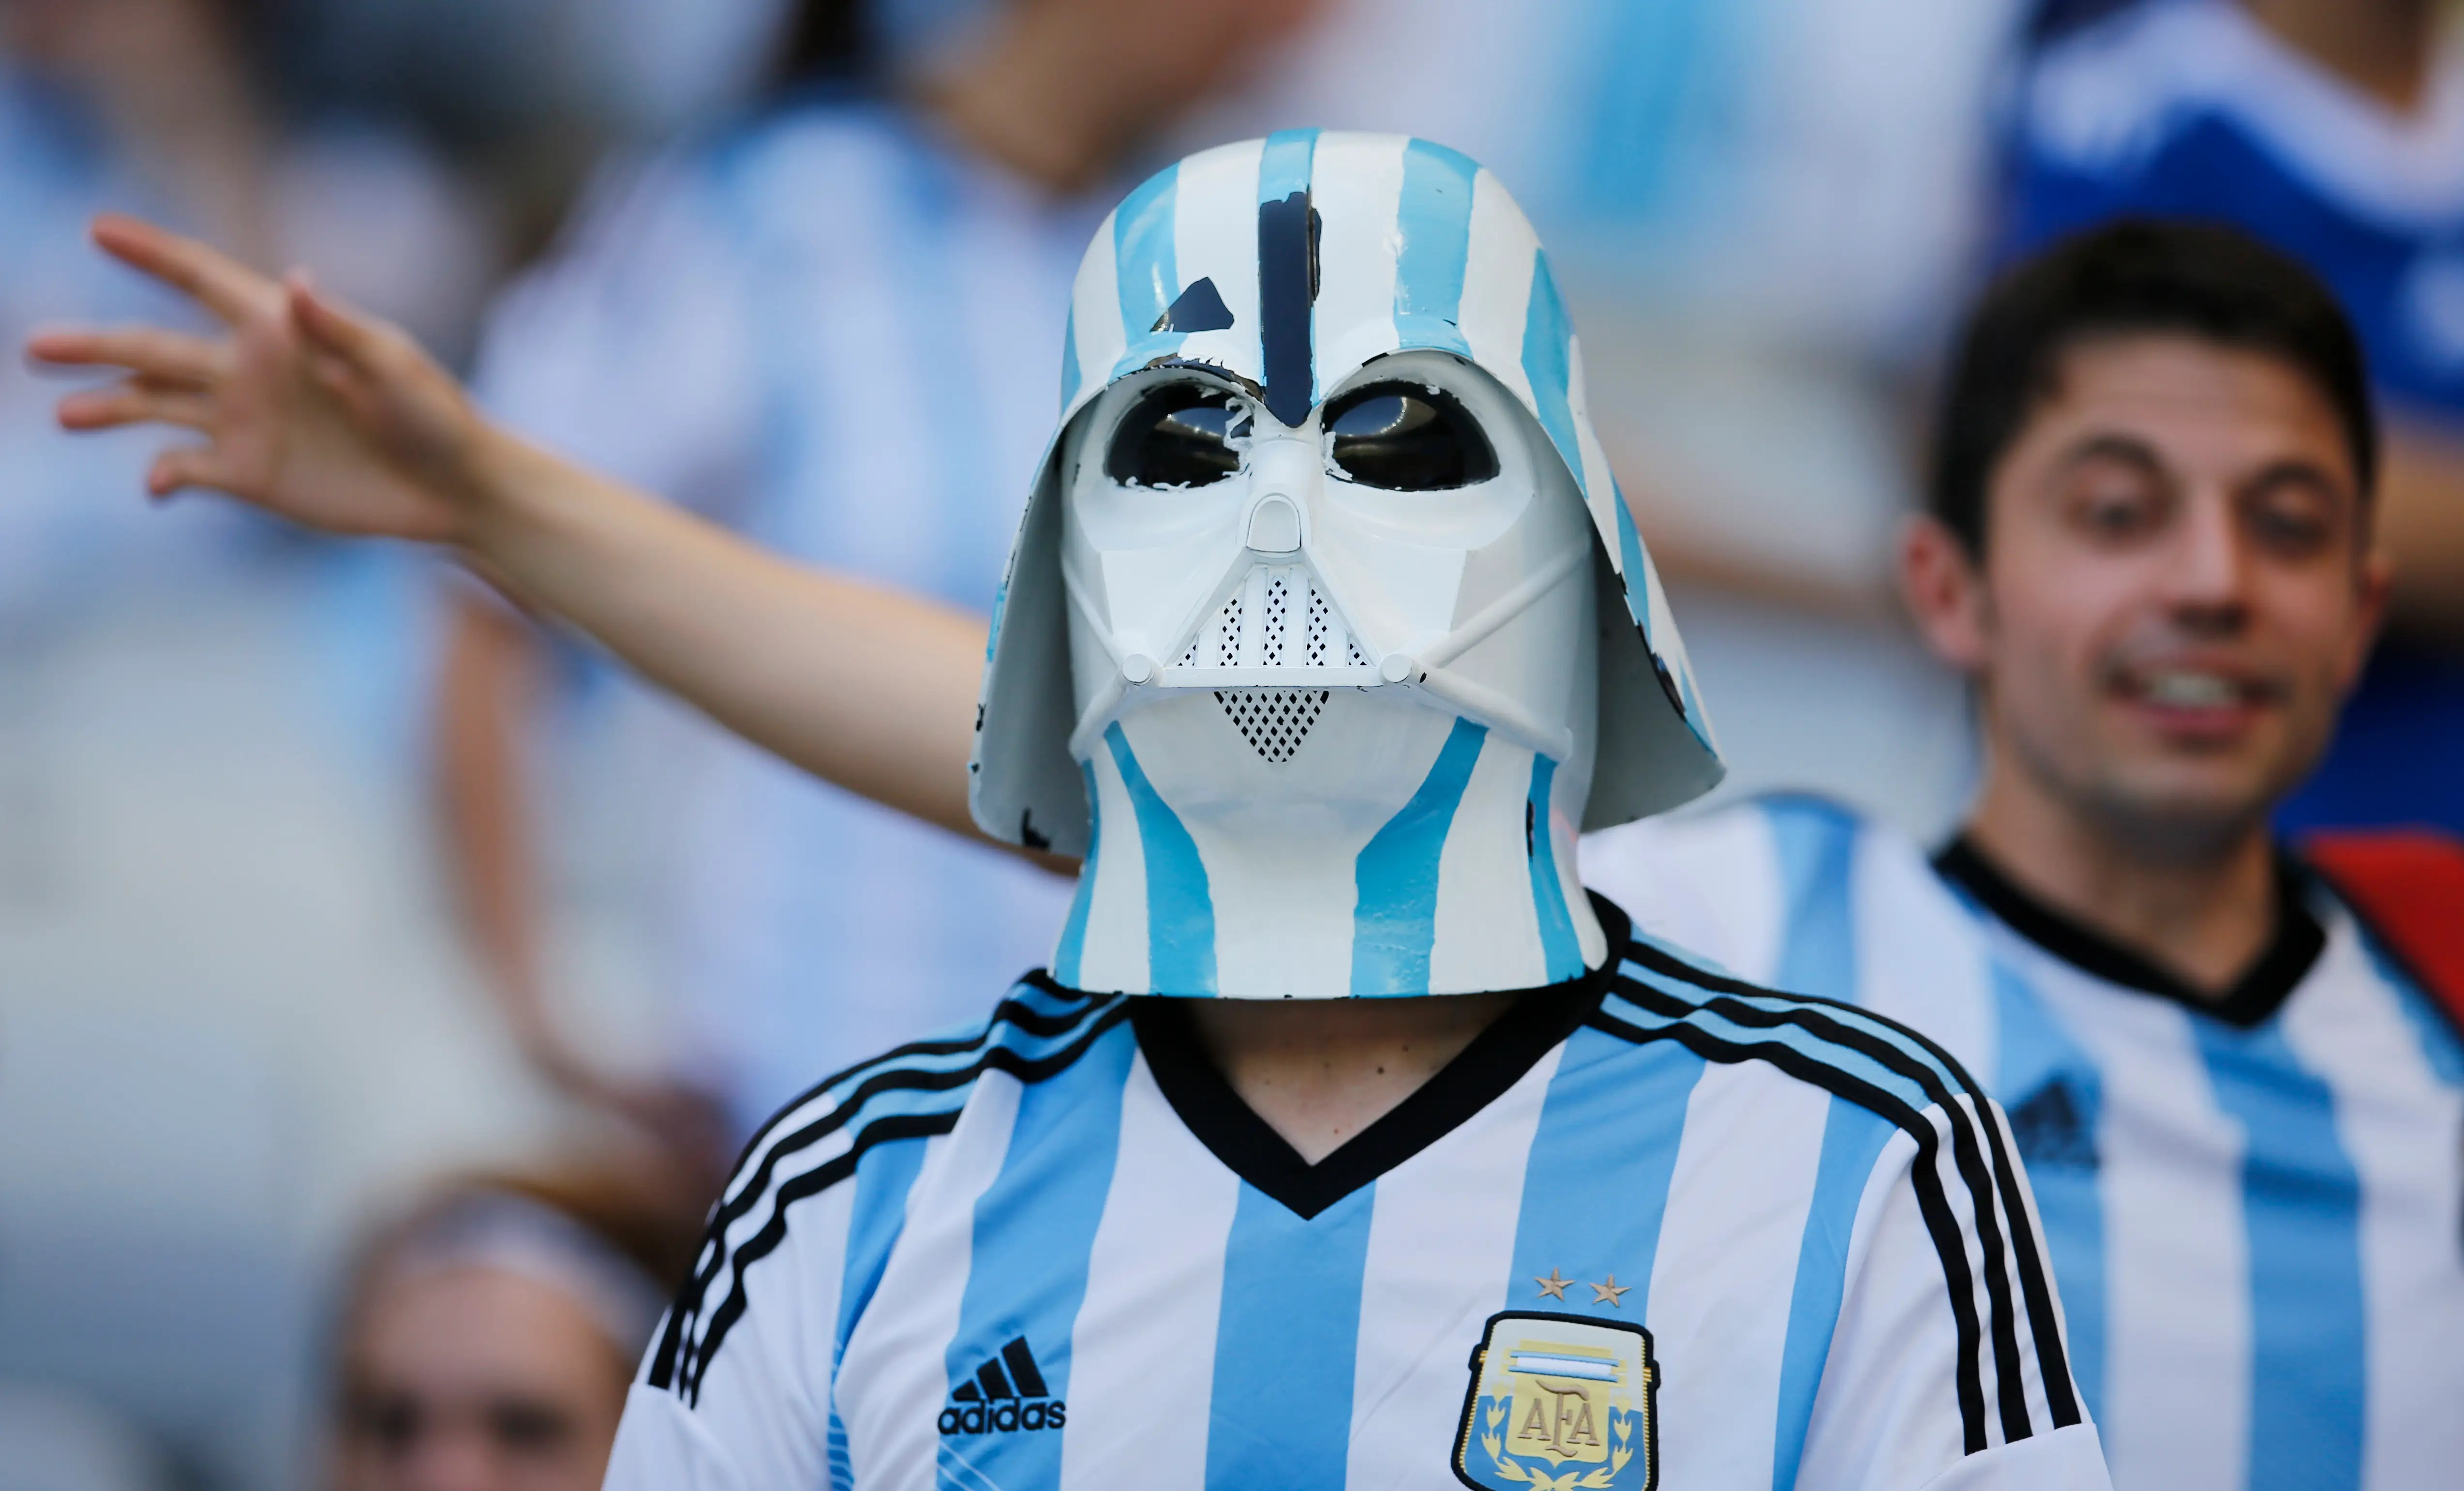 https://i0.wp.com/static4.businessinsider.com/image/53adc6f16bb3f7f47e3347bf-1200/darth-vader-is-apparently-a-fan-of-the-argentina-national-team.jpg